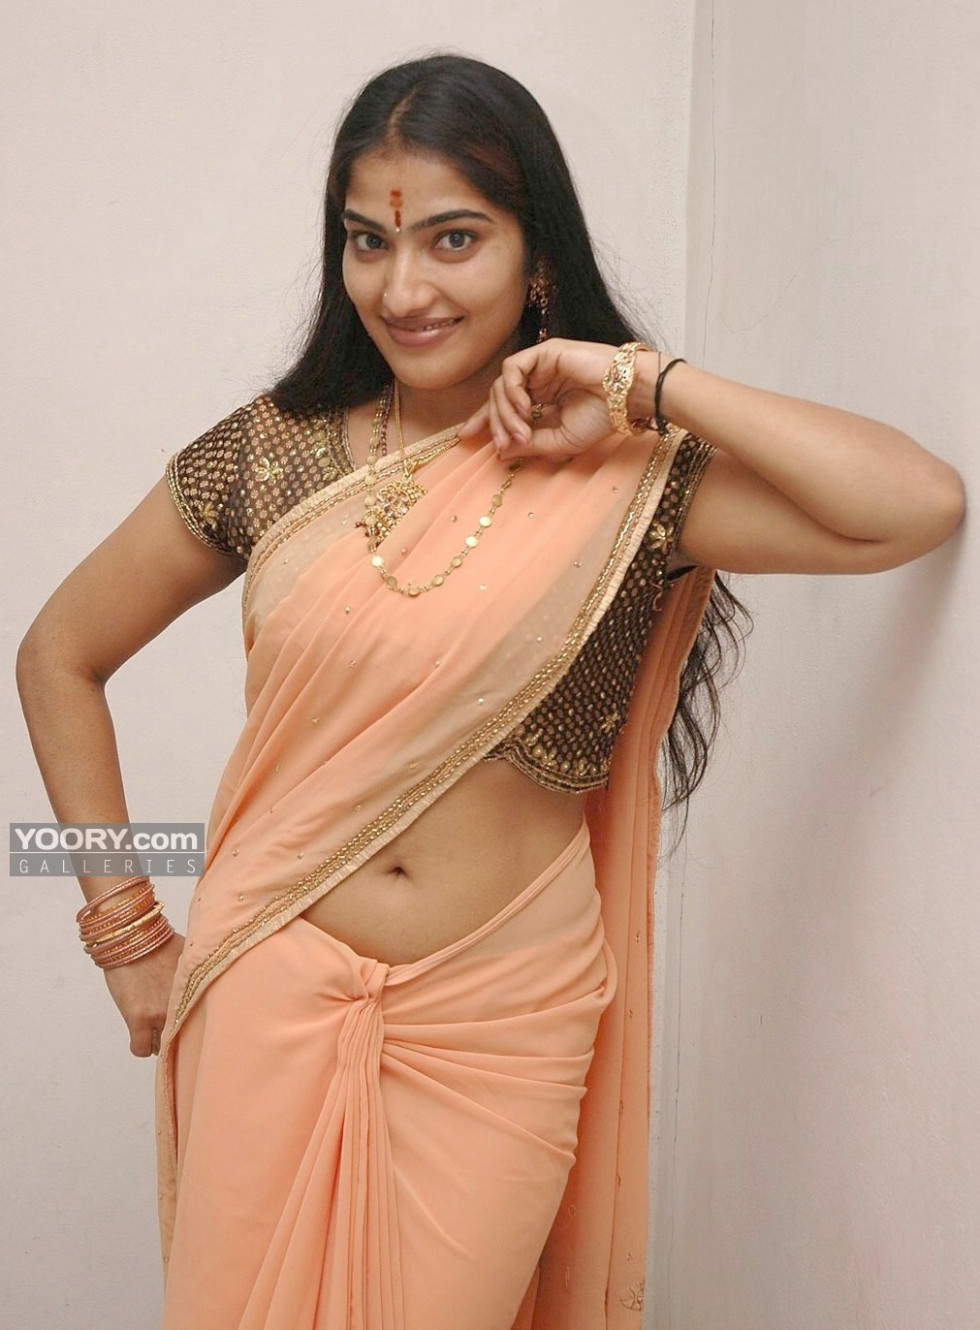 INDIAN ACTRESS: Prabhavallika transparent saree deep navel